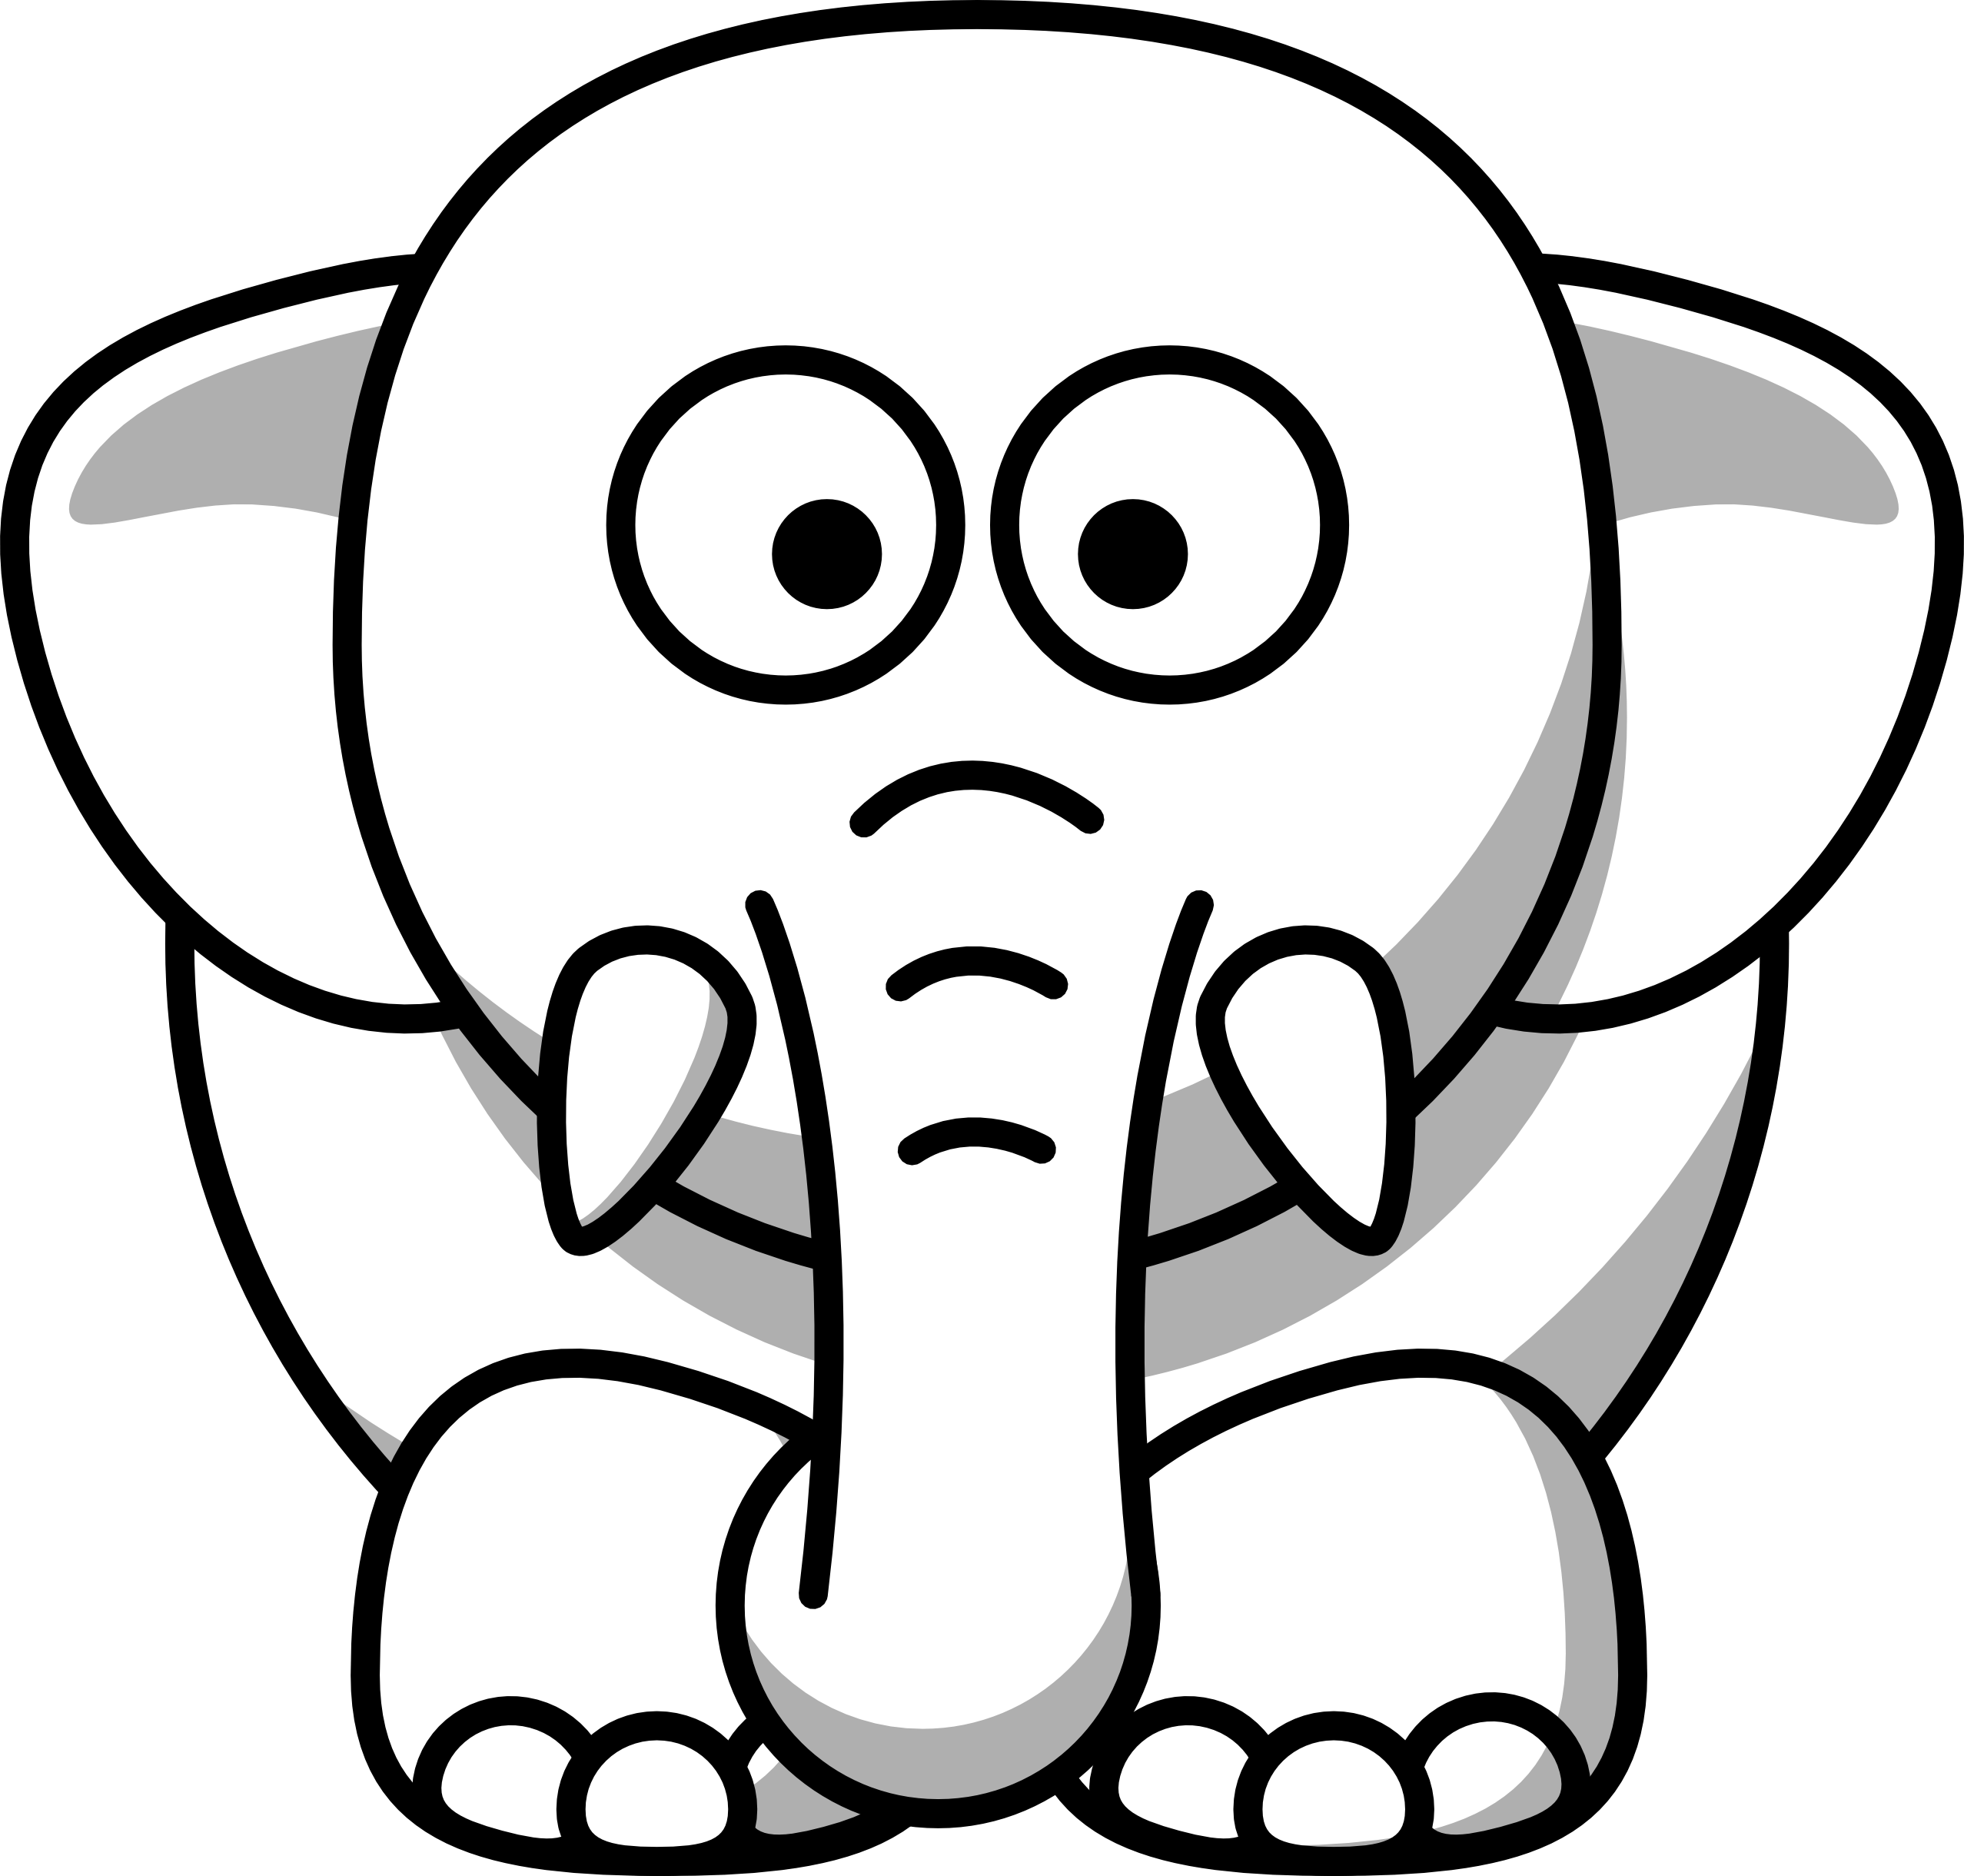 2555x2440 Cartoon Images In Black And White